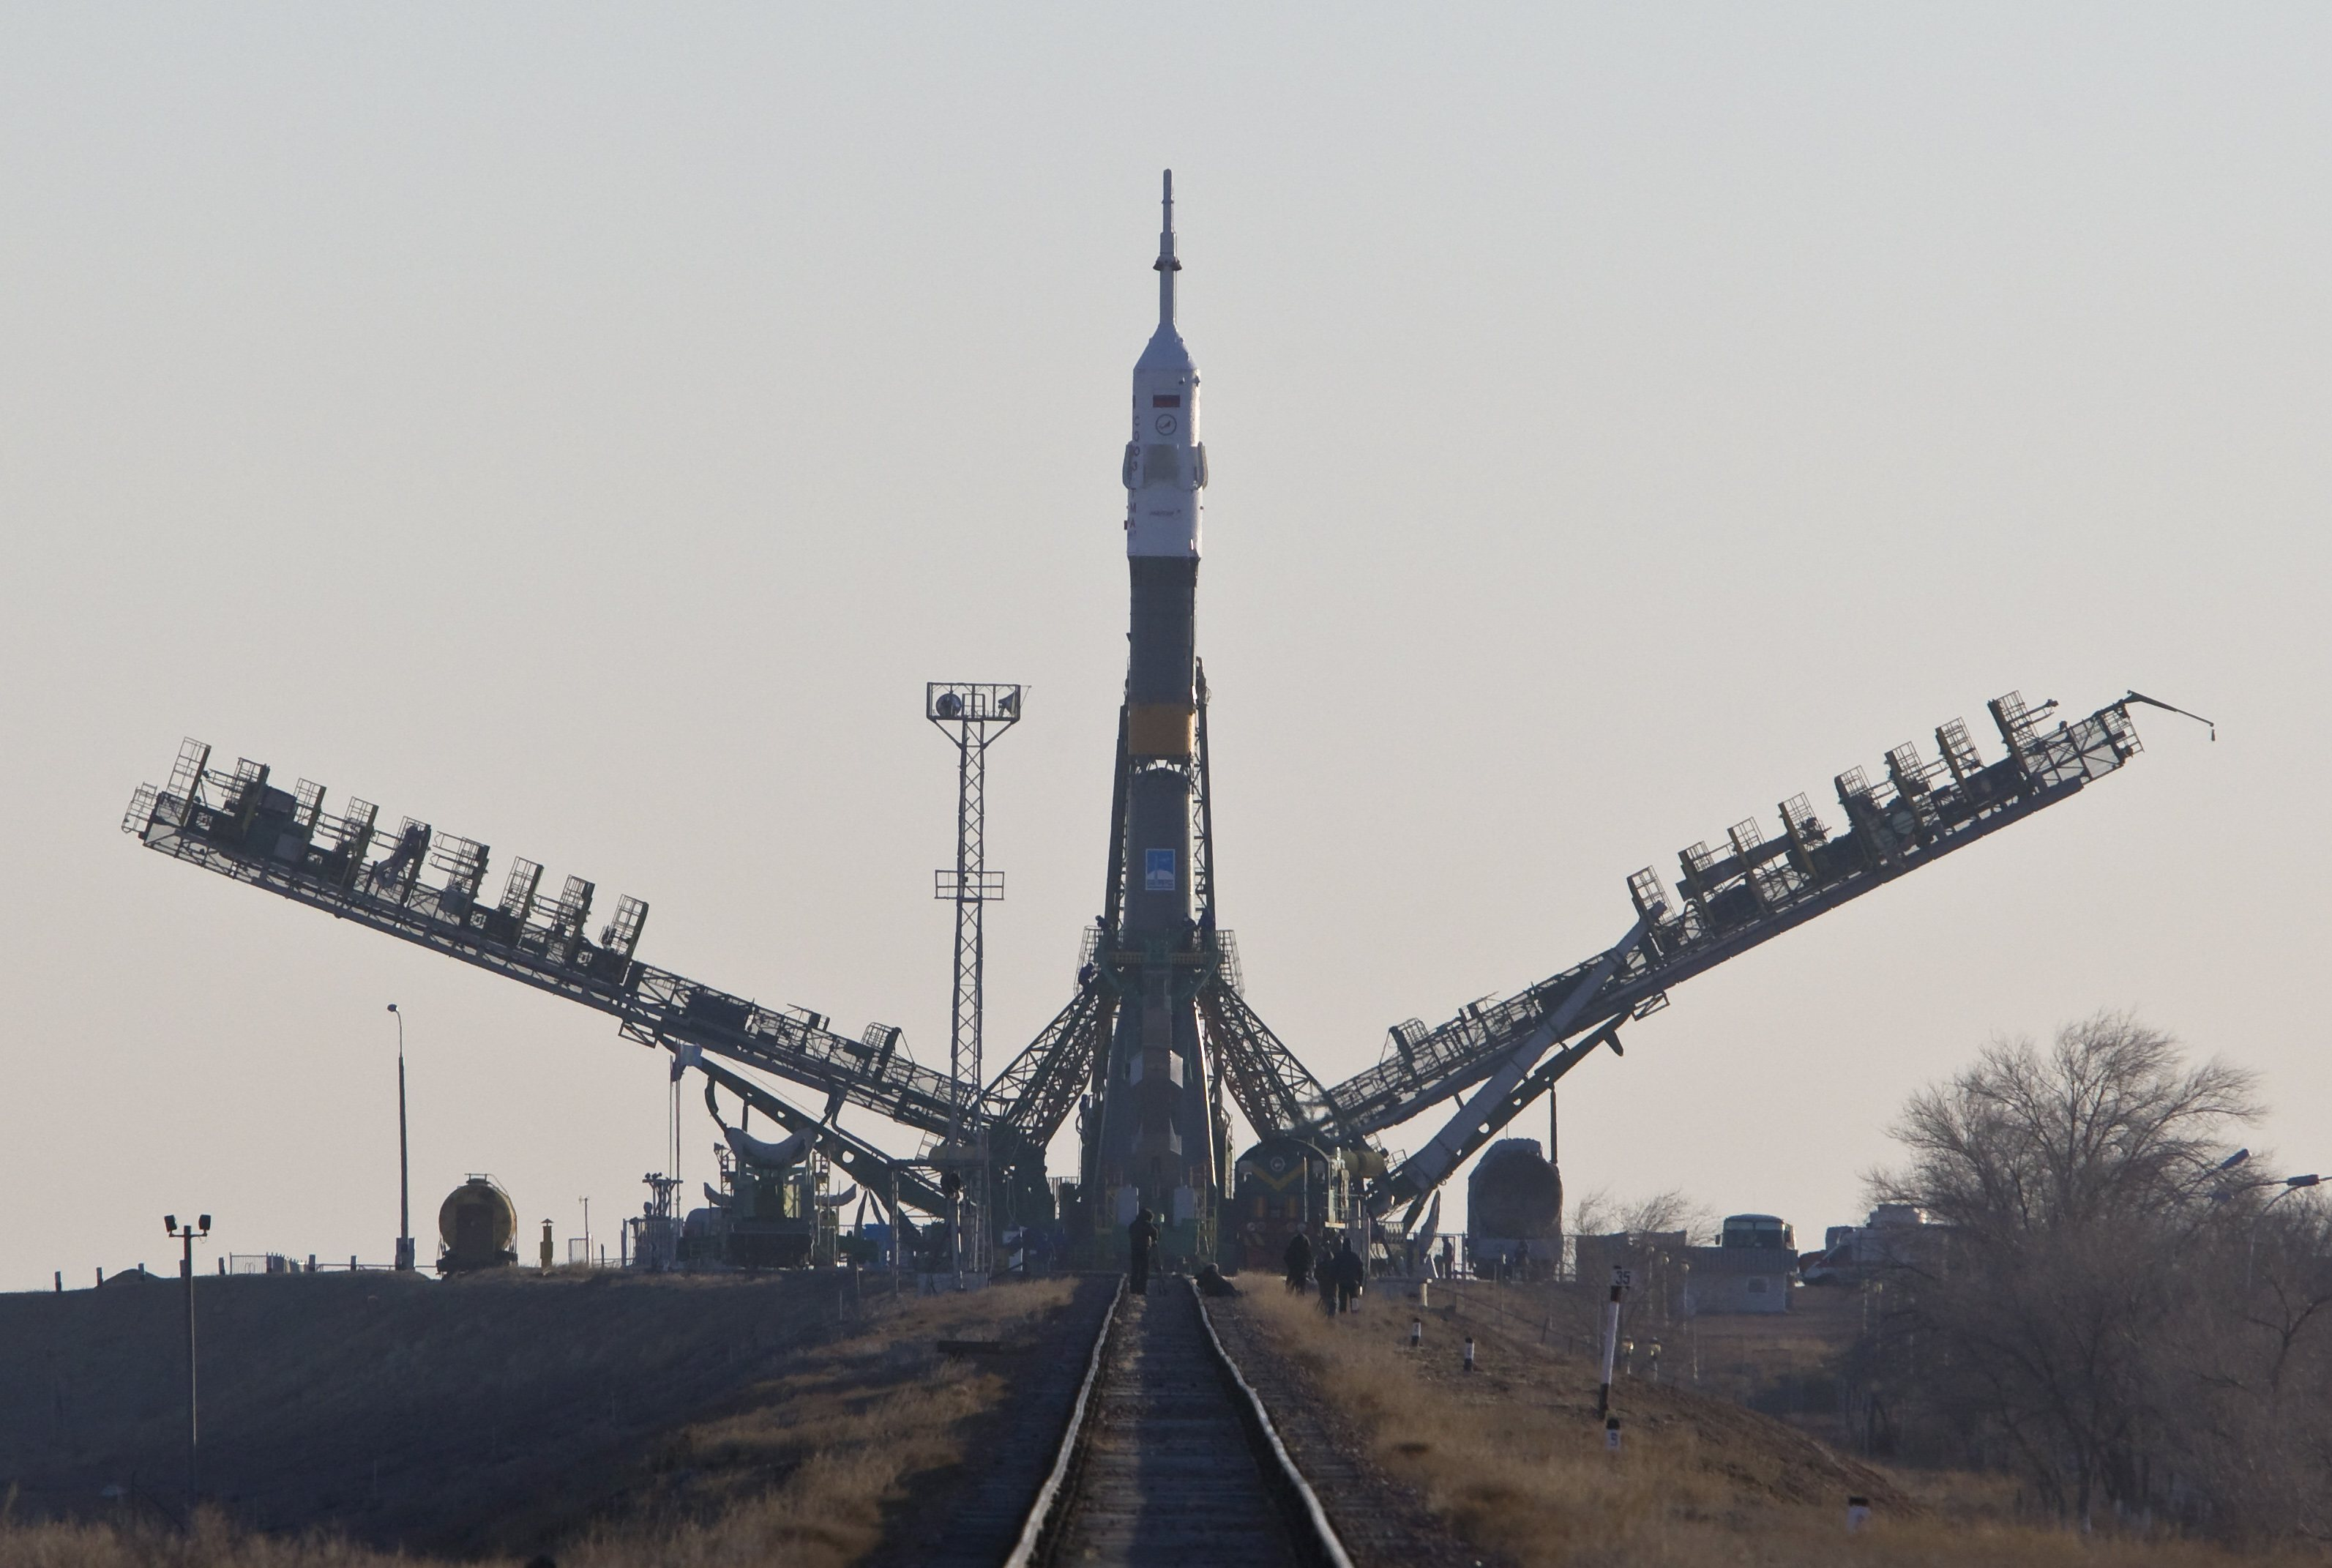 The Soyuz TMA-07M spacecraft is set on its launch pad at the Baikonur cosmodrome December 17, 2012. The Soyuz spacecraft, which will carry U.S. astronaut Thomas Marshburn, Russian cosmonaut Roman Romanenko and Canadian astronaut Chris Hadfield, is scheduled to fly to the International Space Station on December 19. REUTERS/Shamil Zhumatov (KAZAKHSTAN - Tags: SCIENCE TECHNOLOGY TRANSPORT)